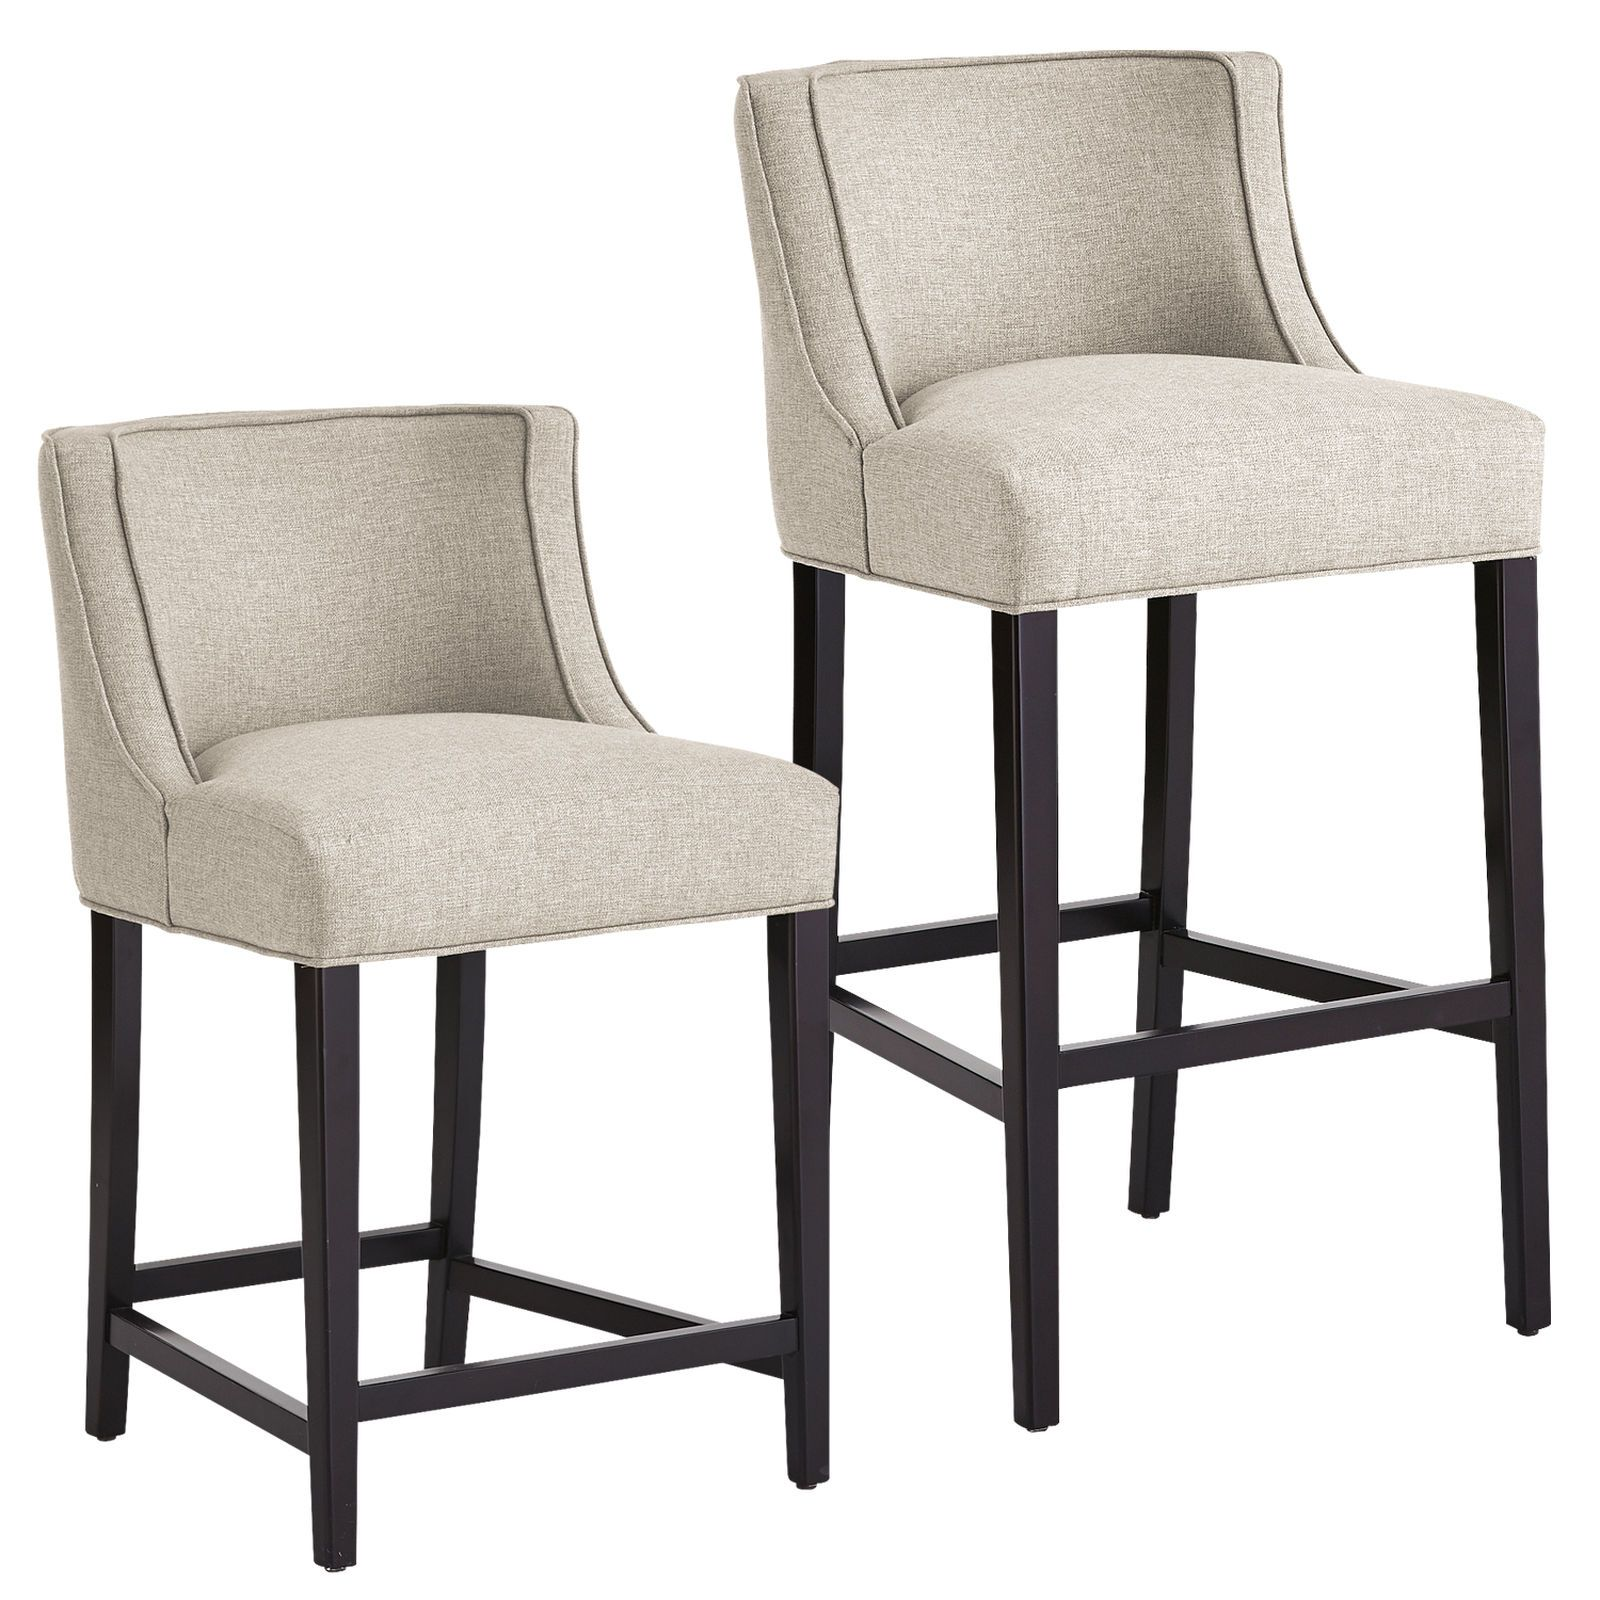 Upholstered Bar Stool Ridged Leg Stools With Backs And: Eva Is Like A Warm Hug From Your Best-dressed Friend